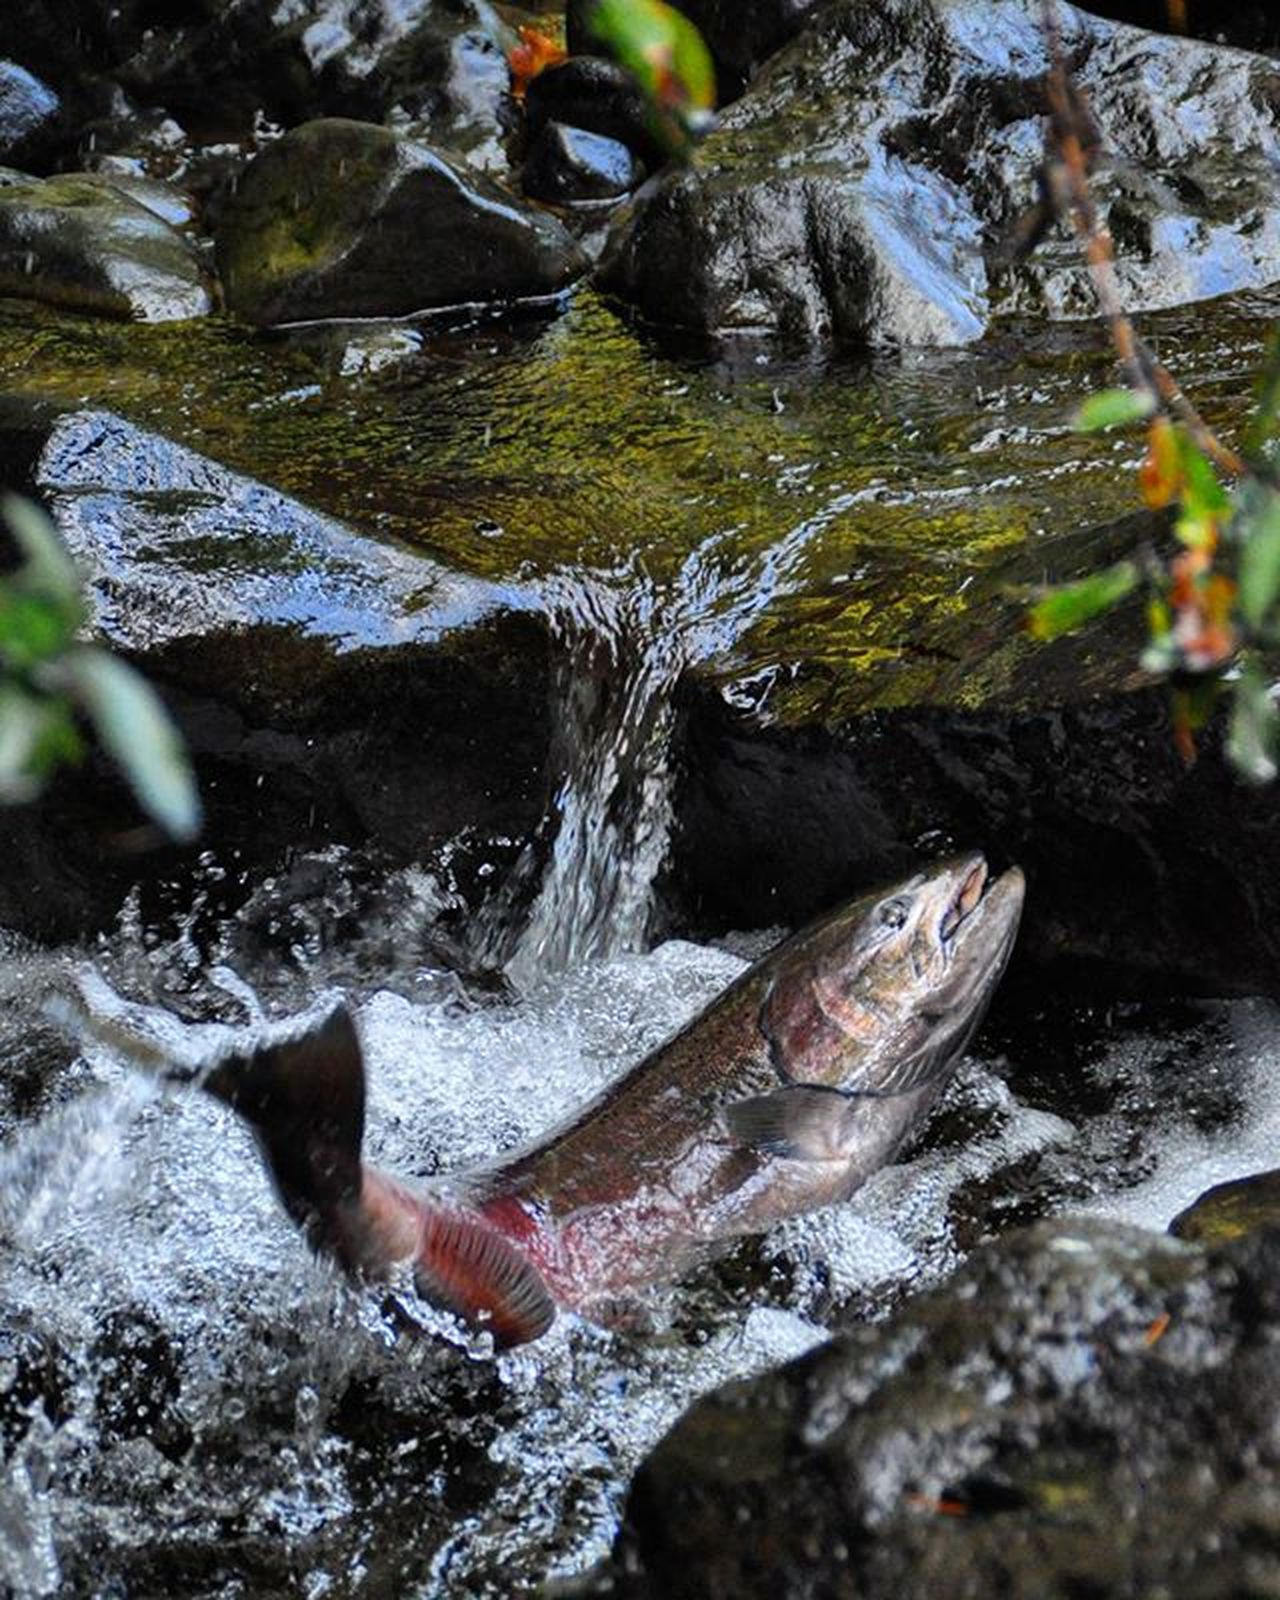 Chinook salmon heading upstream to spawn. Oregon Chinook Salmon Spawning River Upstream Oregonnw Oregonexplored PNW Pnwcollective Pacificnorthwest Upperleft Iloveusa Nature Fishing Fish Natgeo Rivergorge USA Usfws Usinterior @usfws TravelOregon Travel Feature Afar nikonusa nofilter